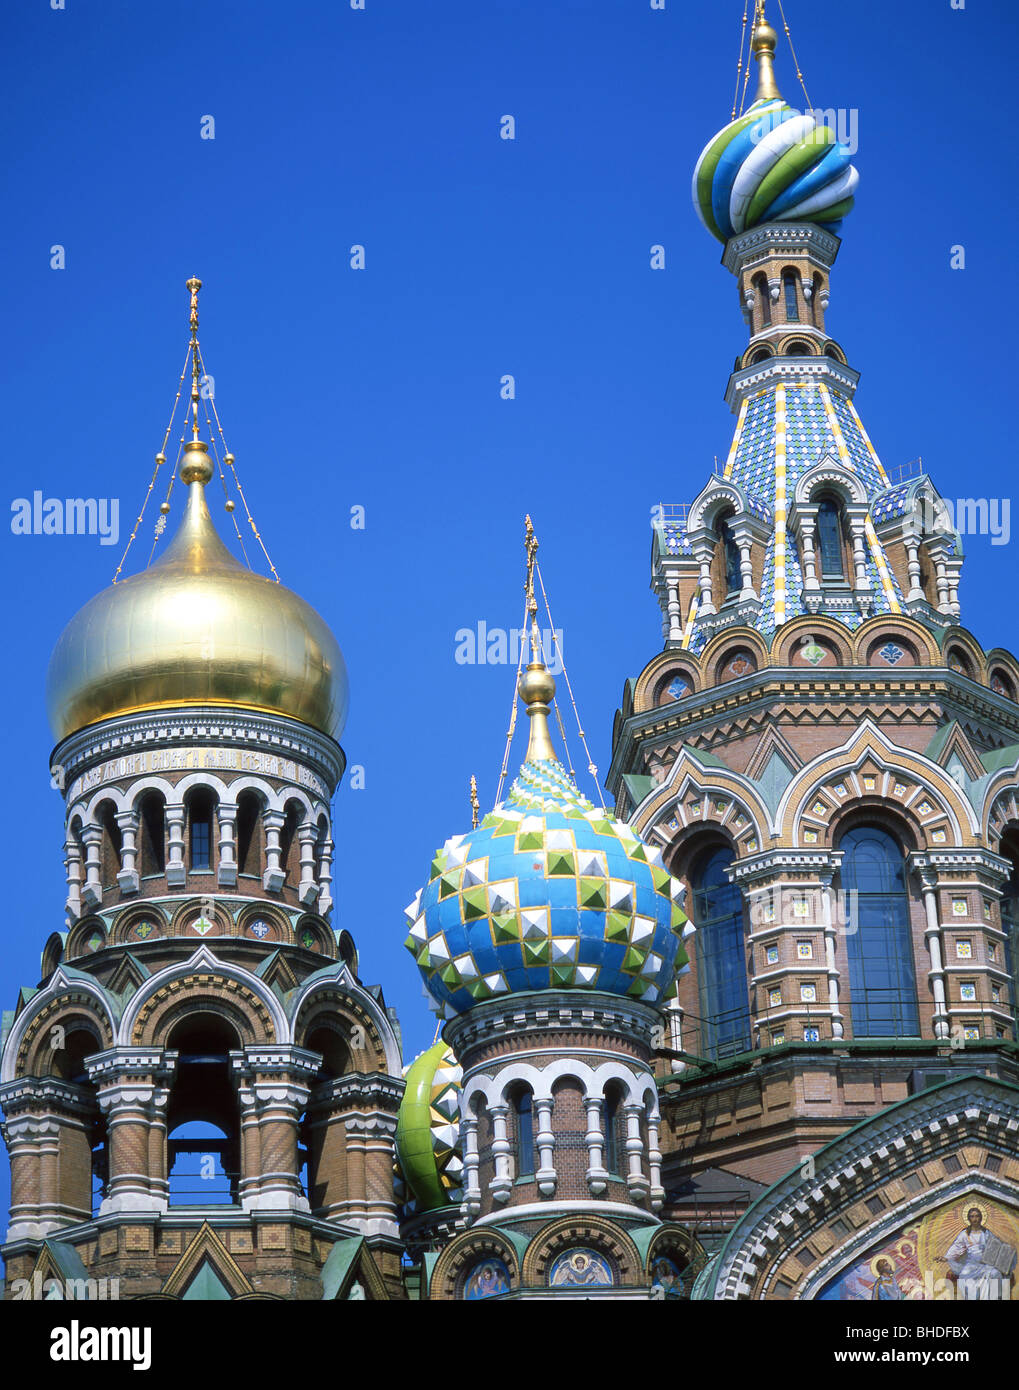 The Church of the Savior on Spilled Blood, Saint Petersburg, Northwestern Region, Russia - Stock Image